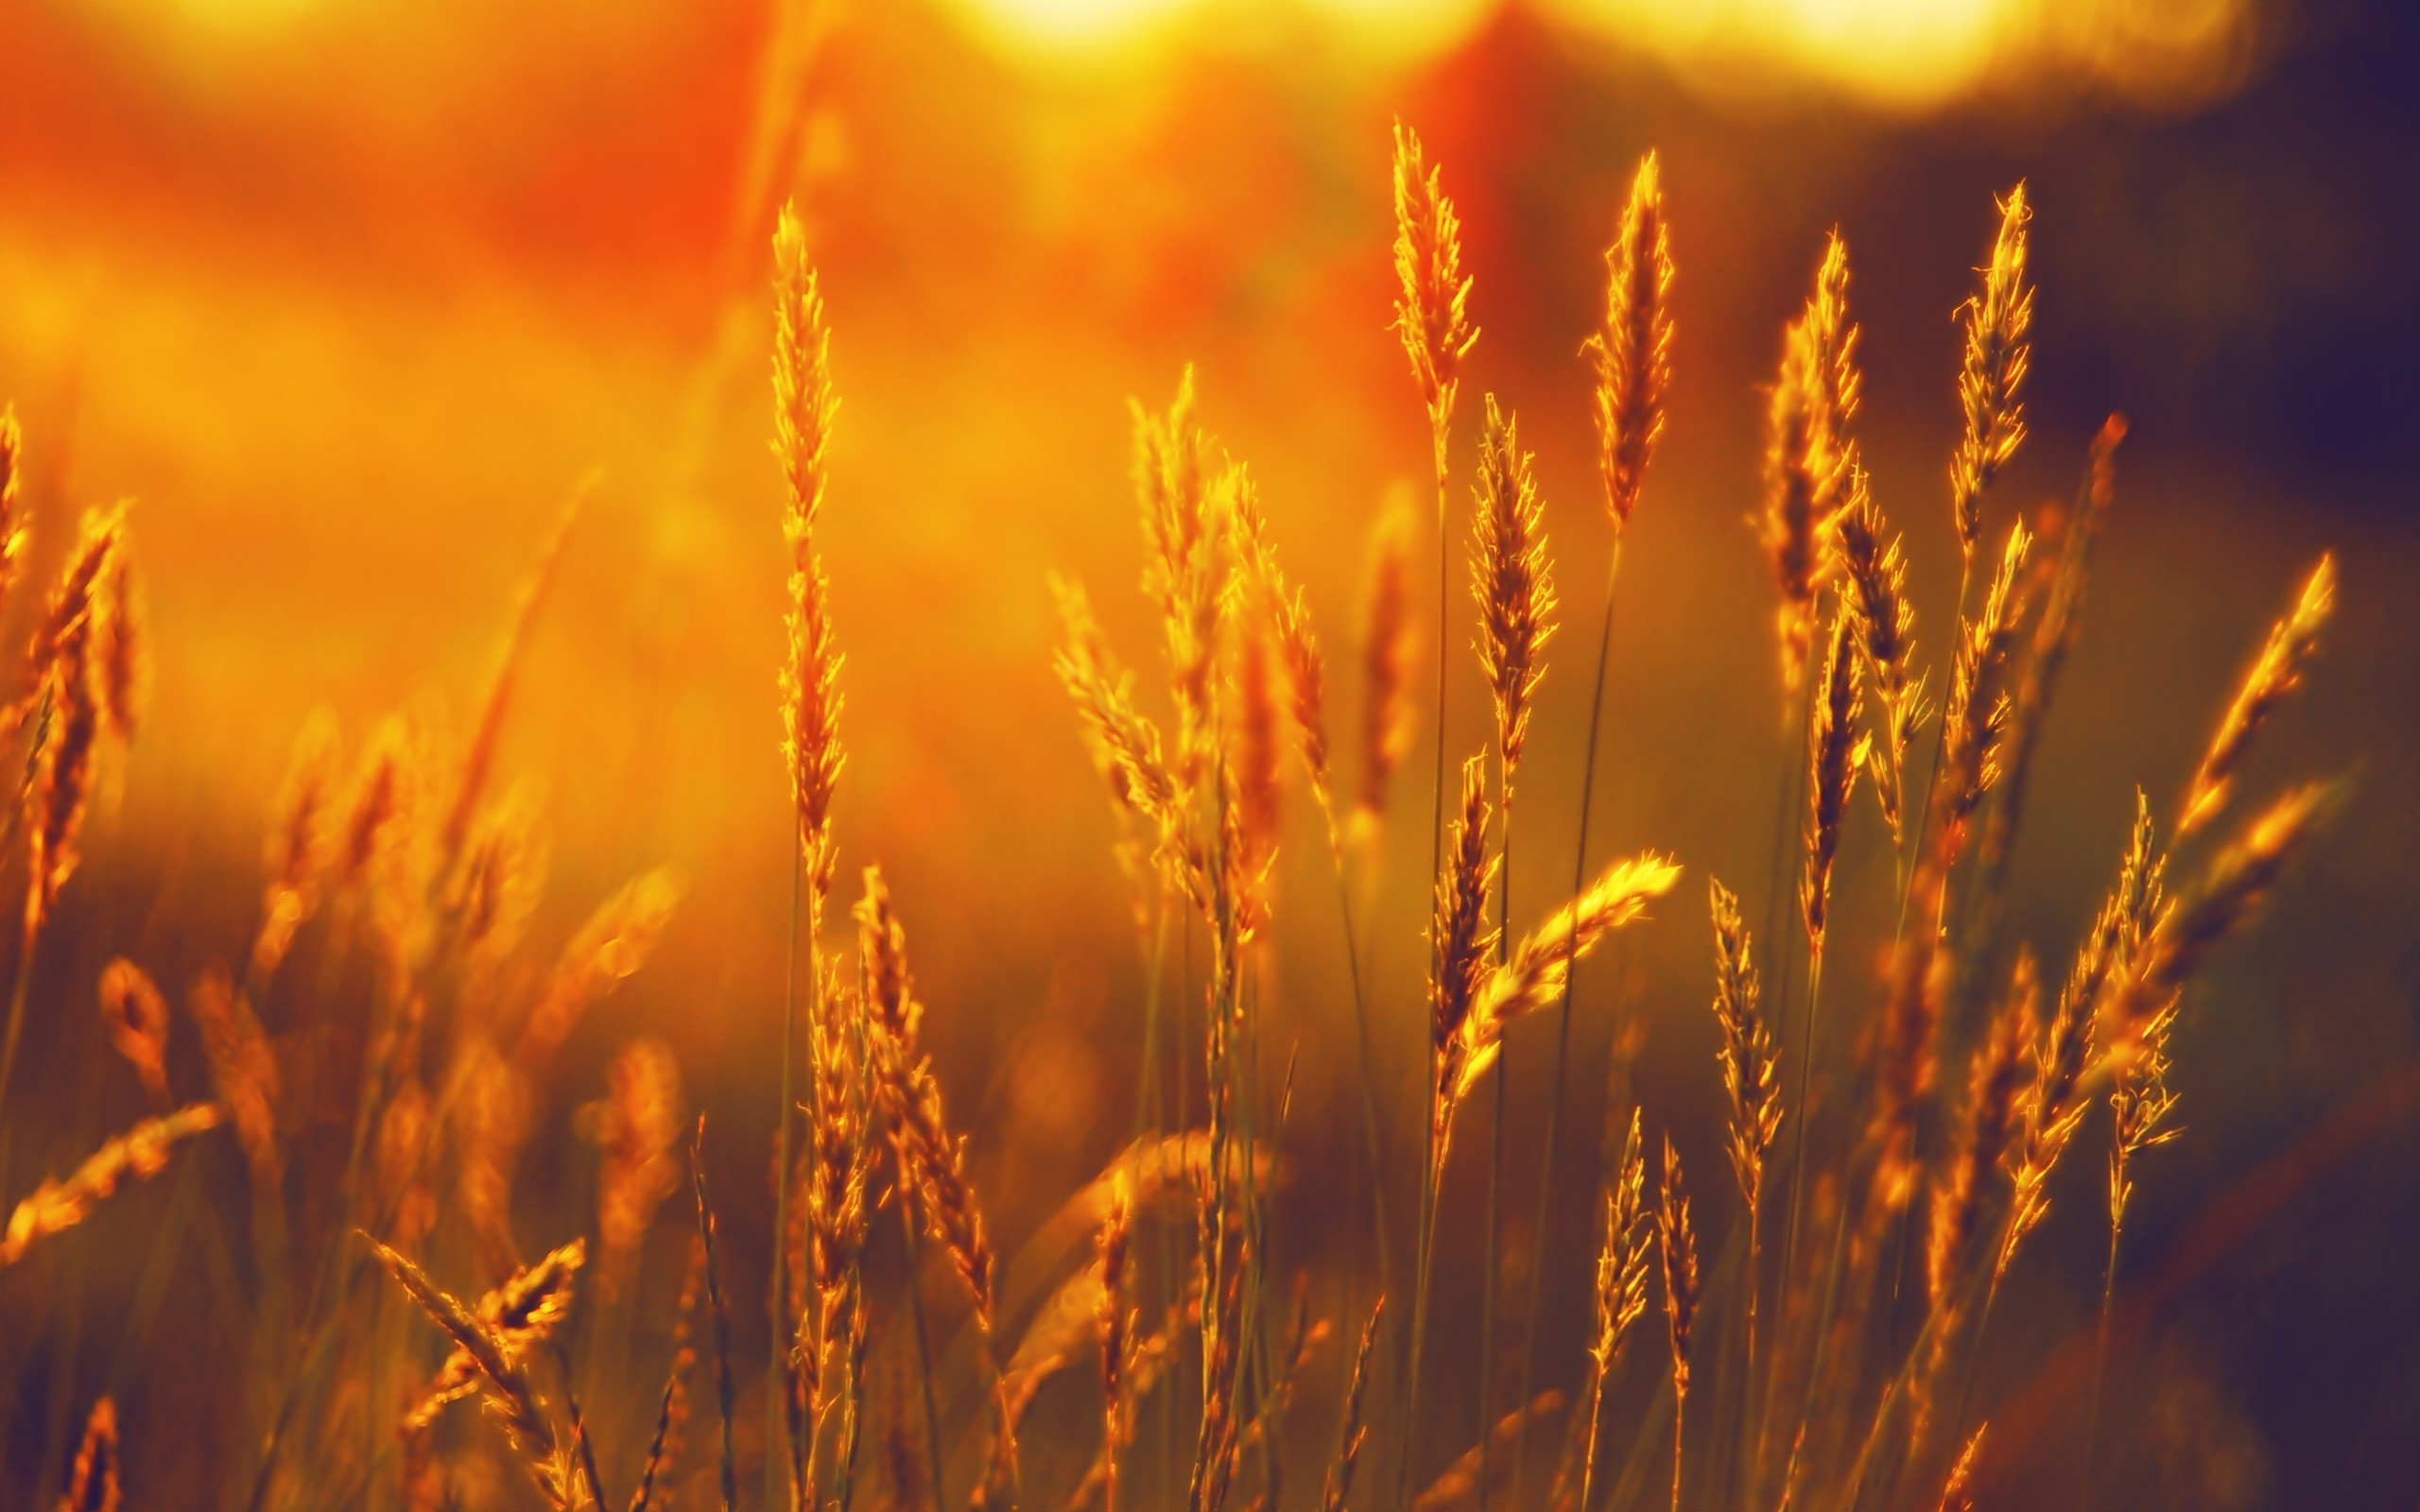 Res: 2560x1600, landscape, Summer, Field, Wheat, Sunset Wallpapers HD / Desktop and Mobile  Backgrounds